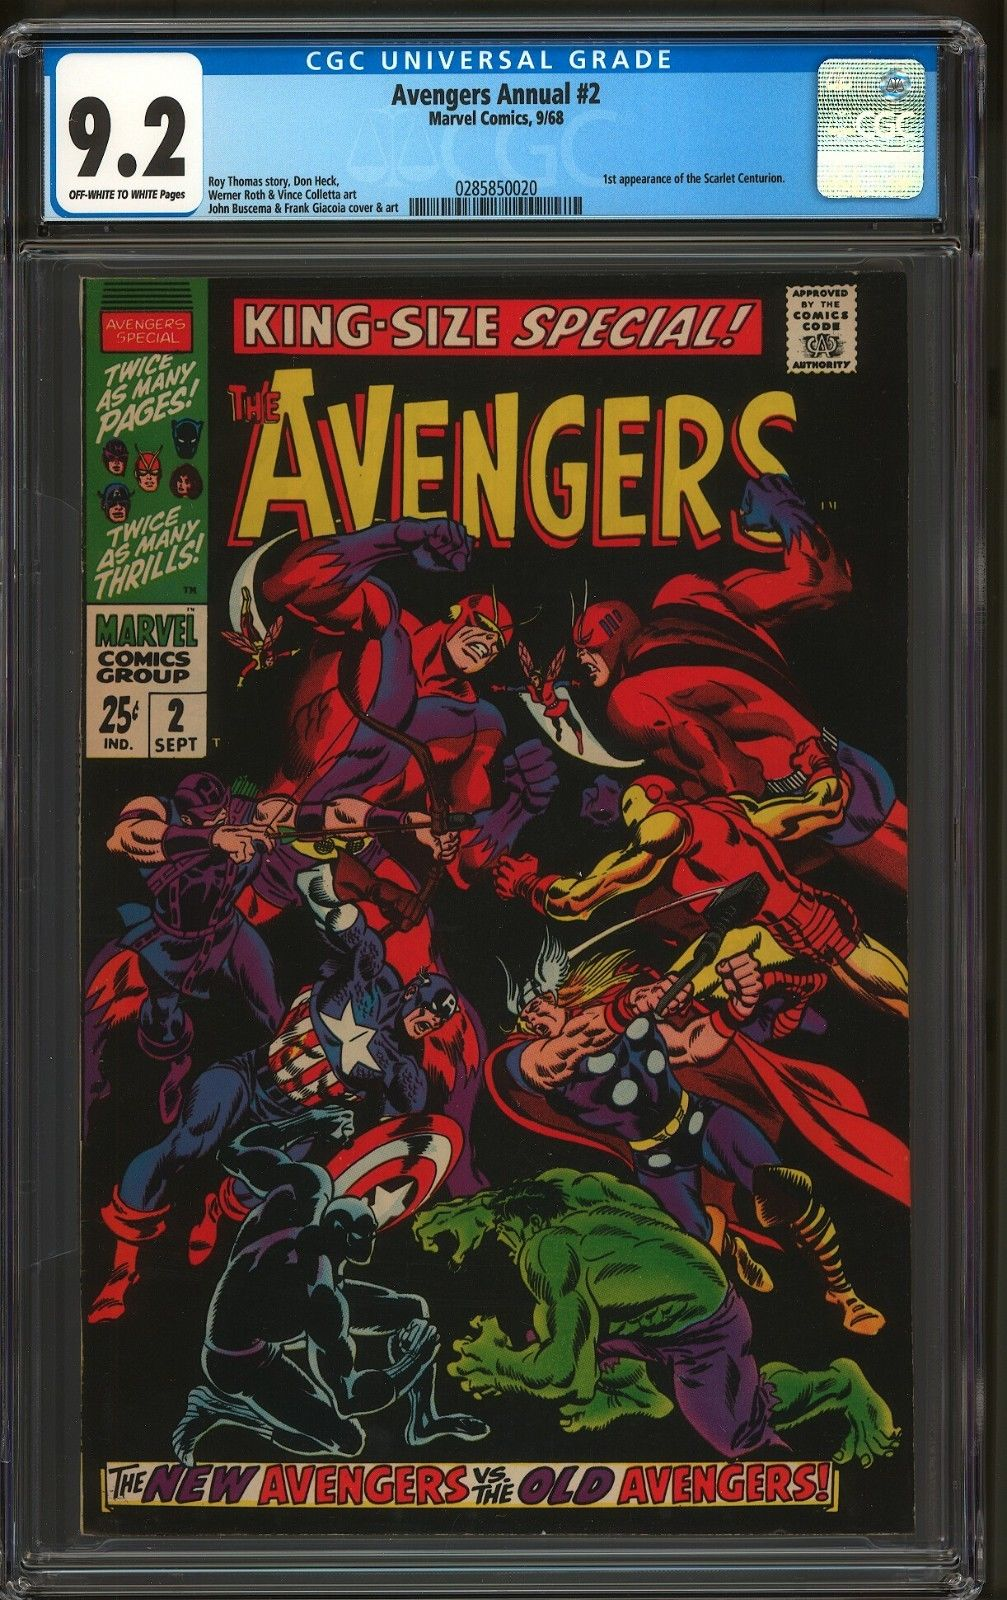 AVENGERS ANNUAL #2 CGC 9.2 OW/W PAGES CLASSIC AVENGERS VS AVENGERS COVER